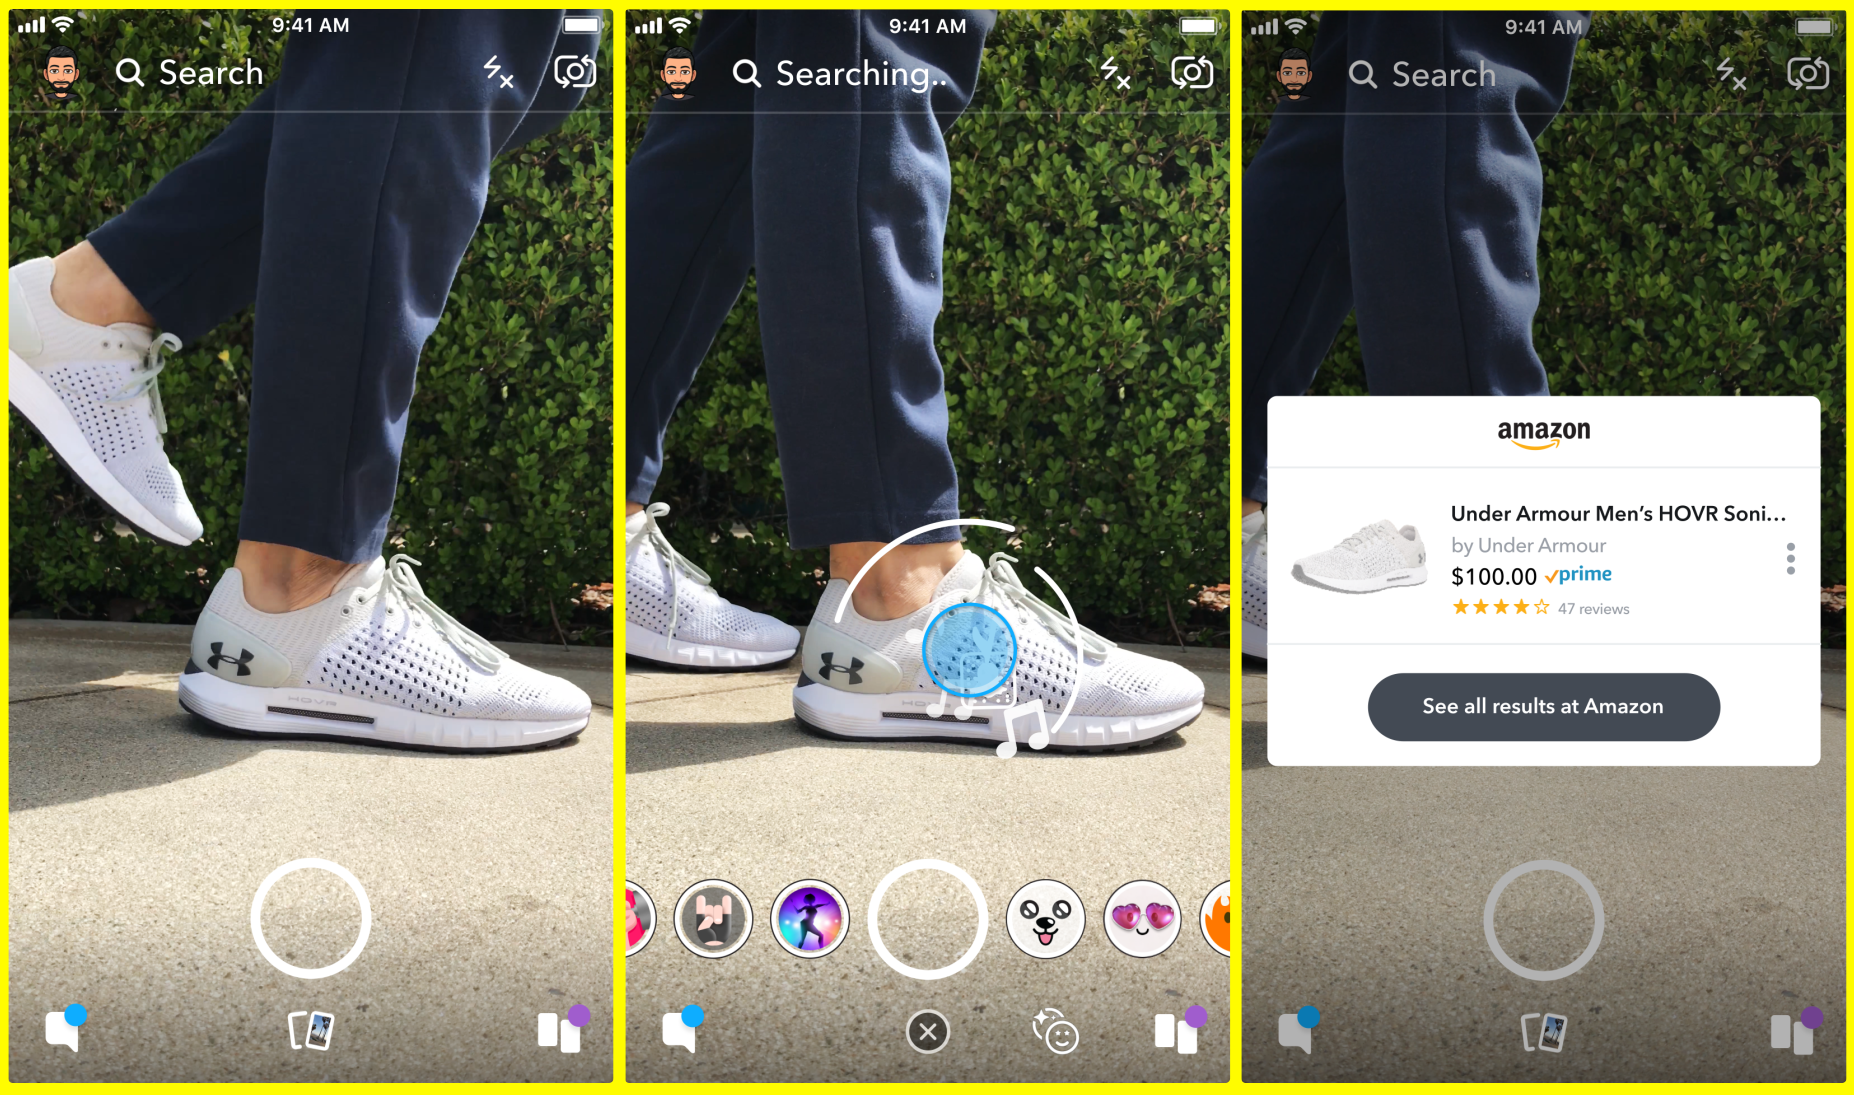 snapchat-amazon-visual-search-shopping